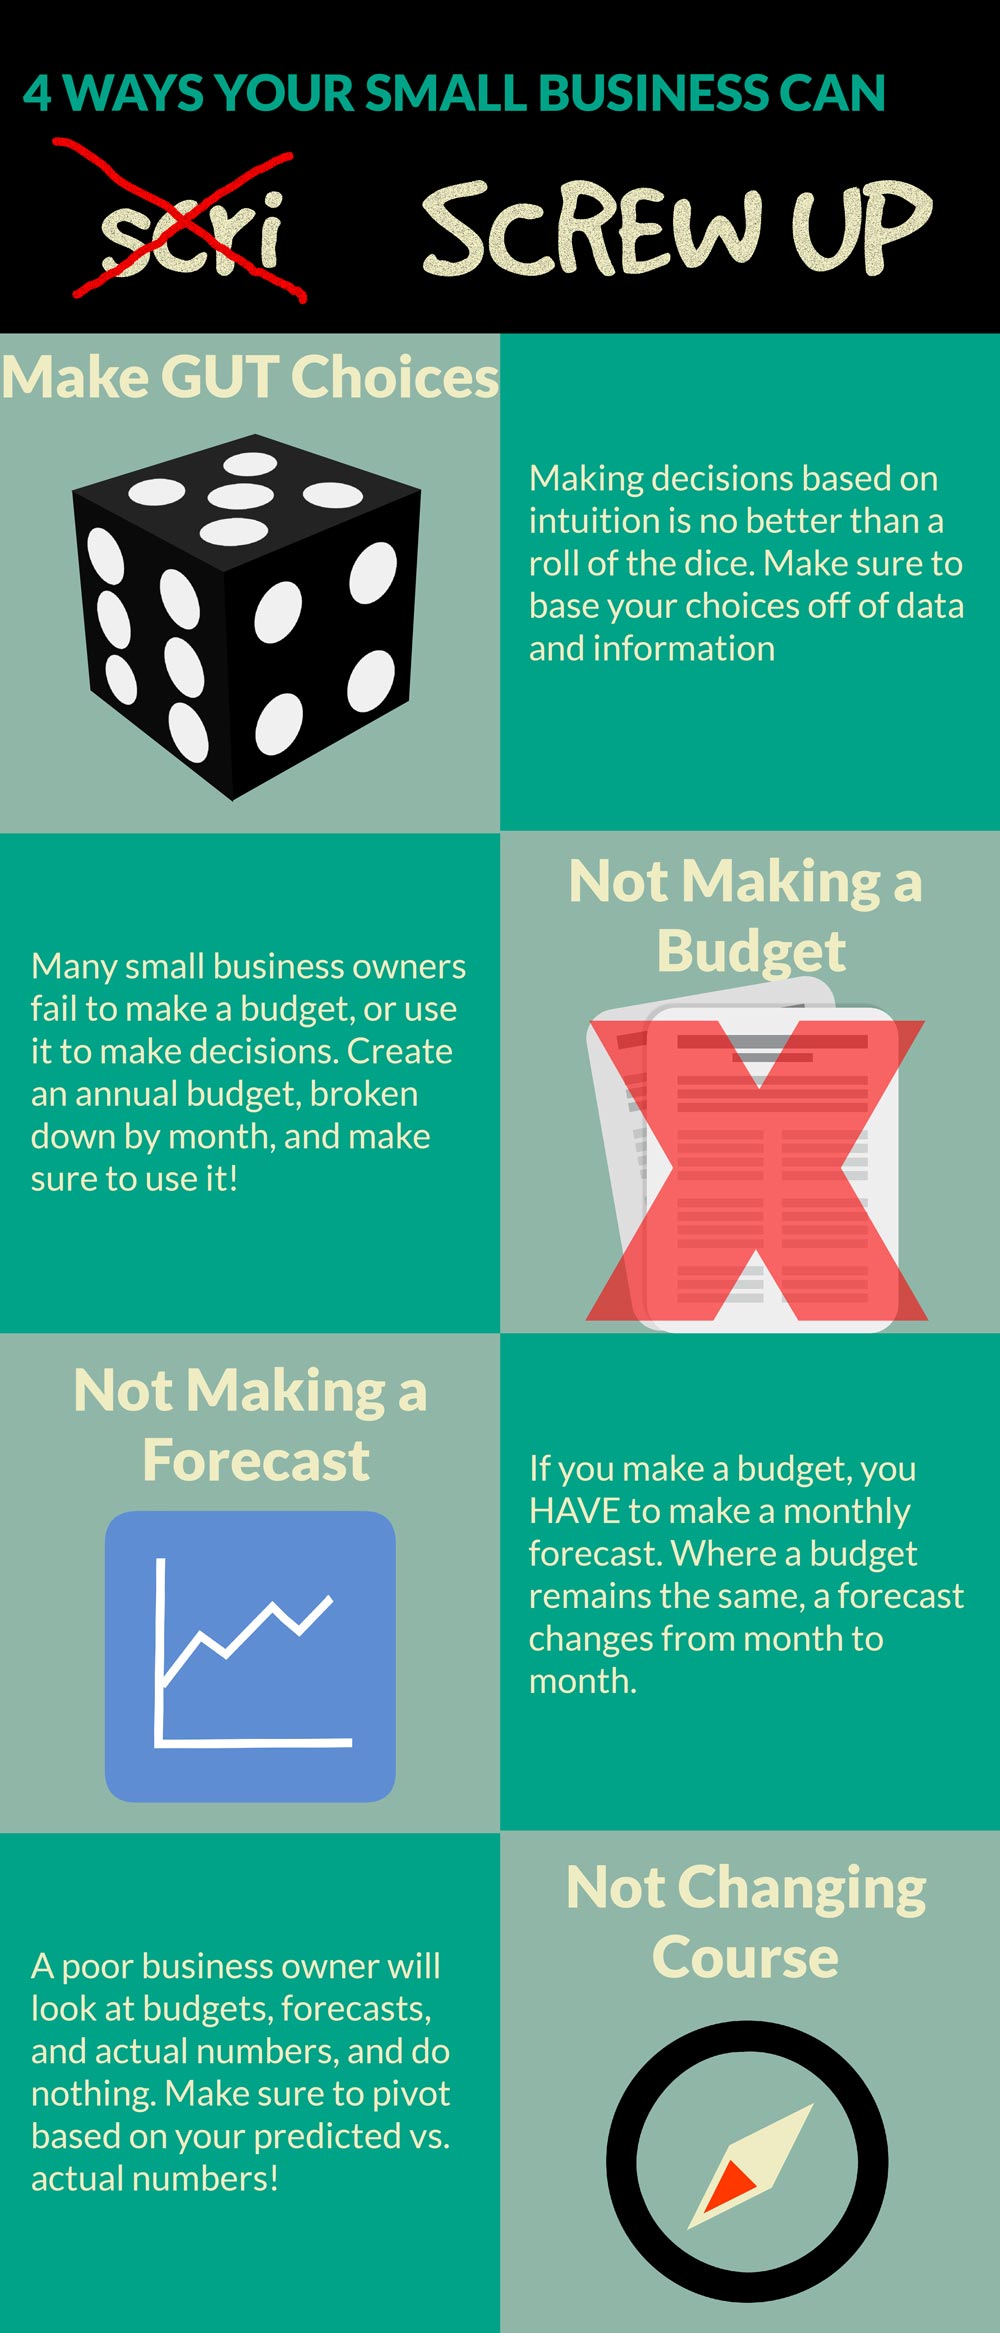 Expensive small business mistakes